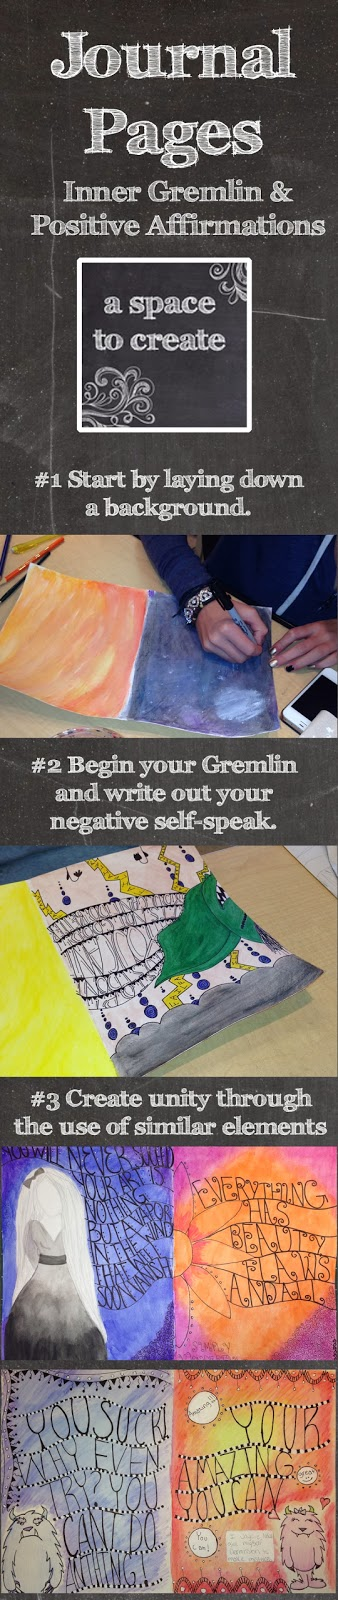 http://www.teacherspayteachers.com/Product/Journal-Pages-Inner-Gremlin-and-Postive-Affirmations-Lesson-999295